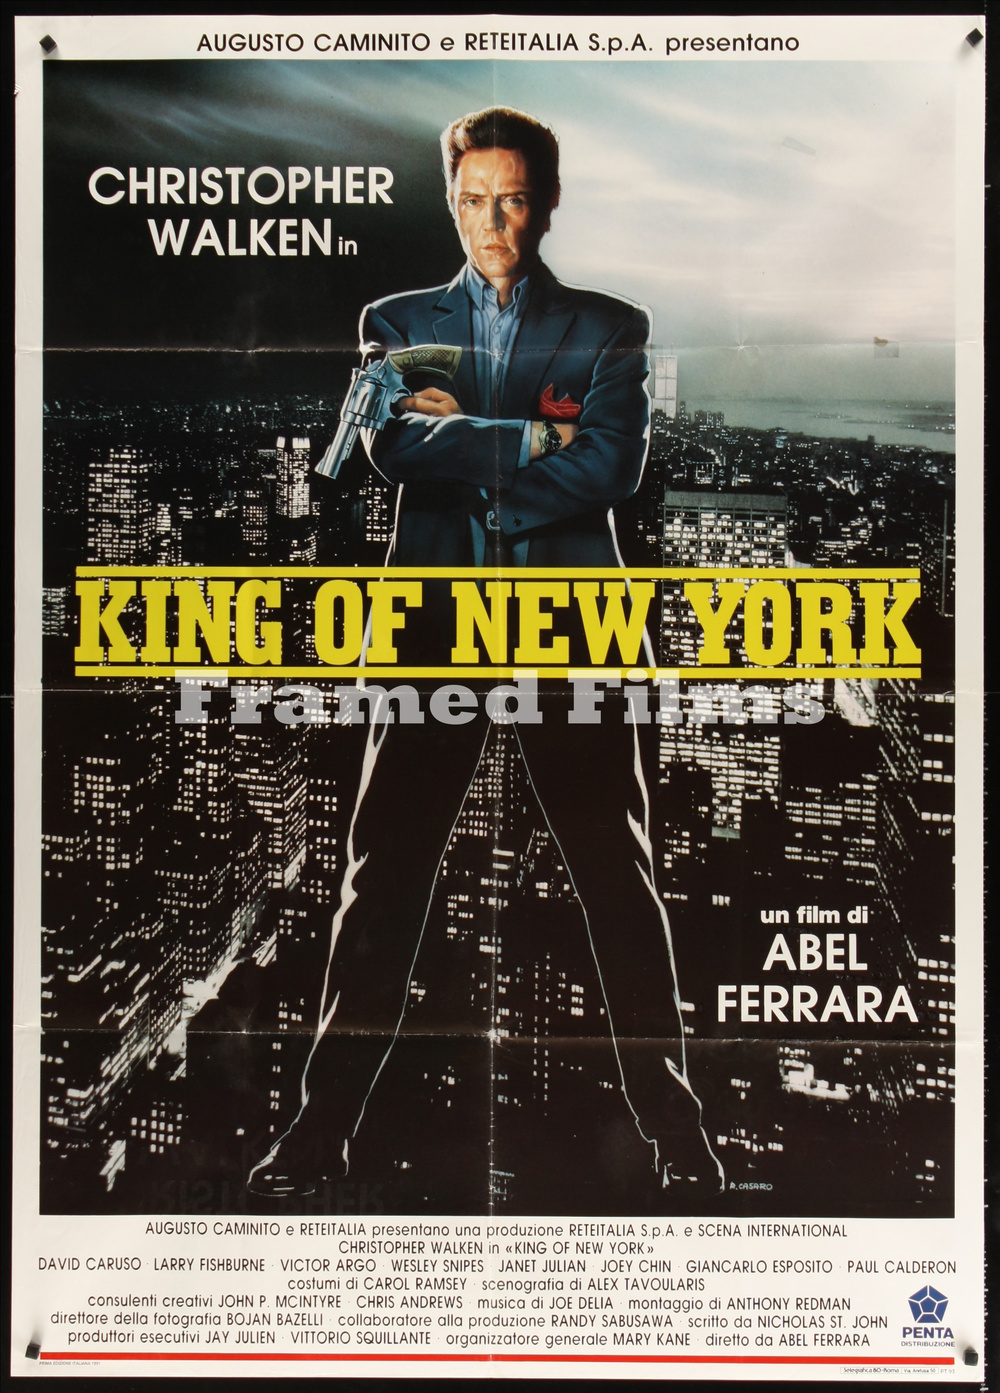 italian_1p_king_of_new_york_dupe1_JC07208_L.jpg